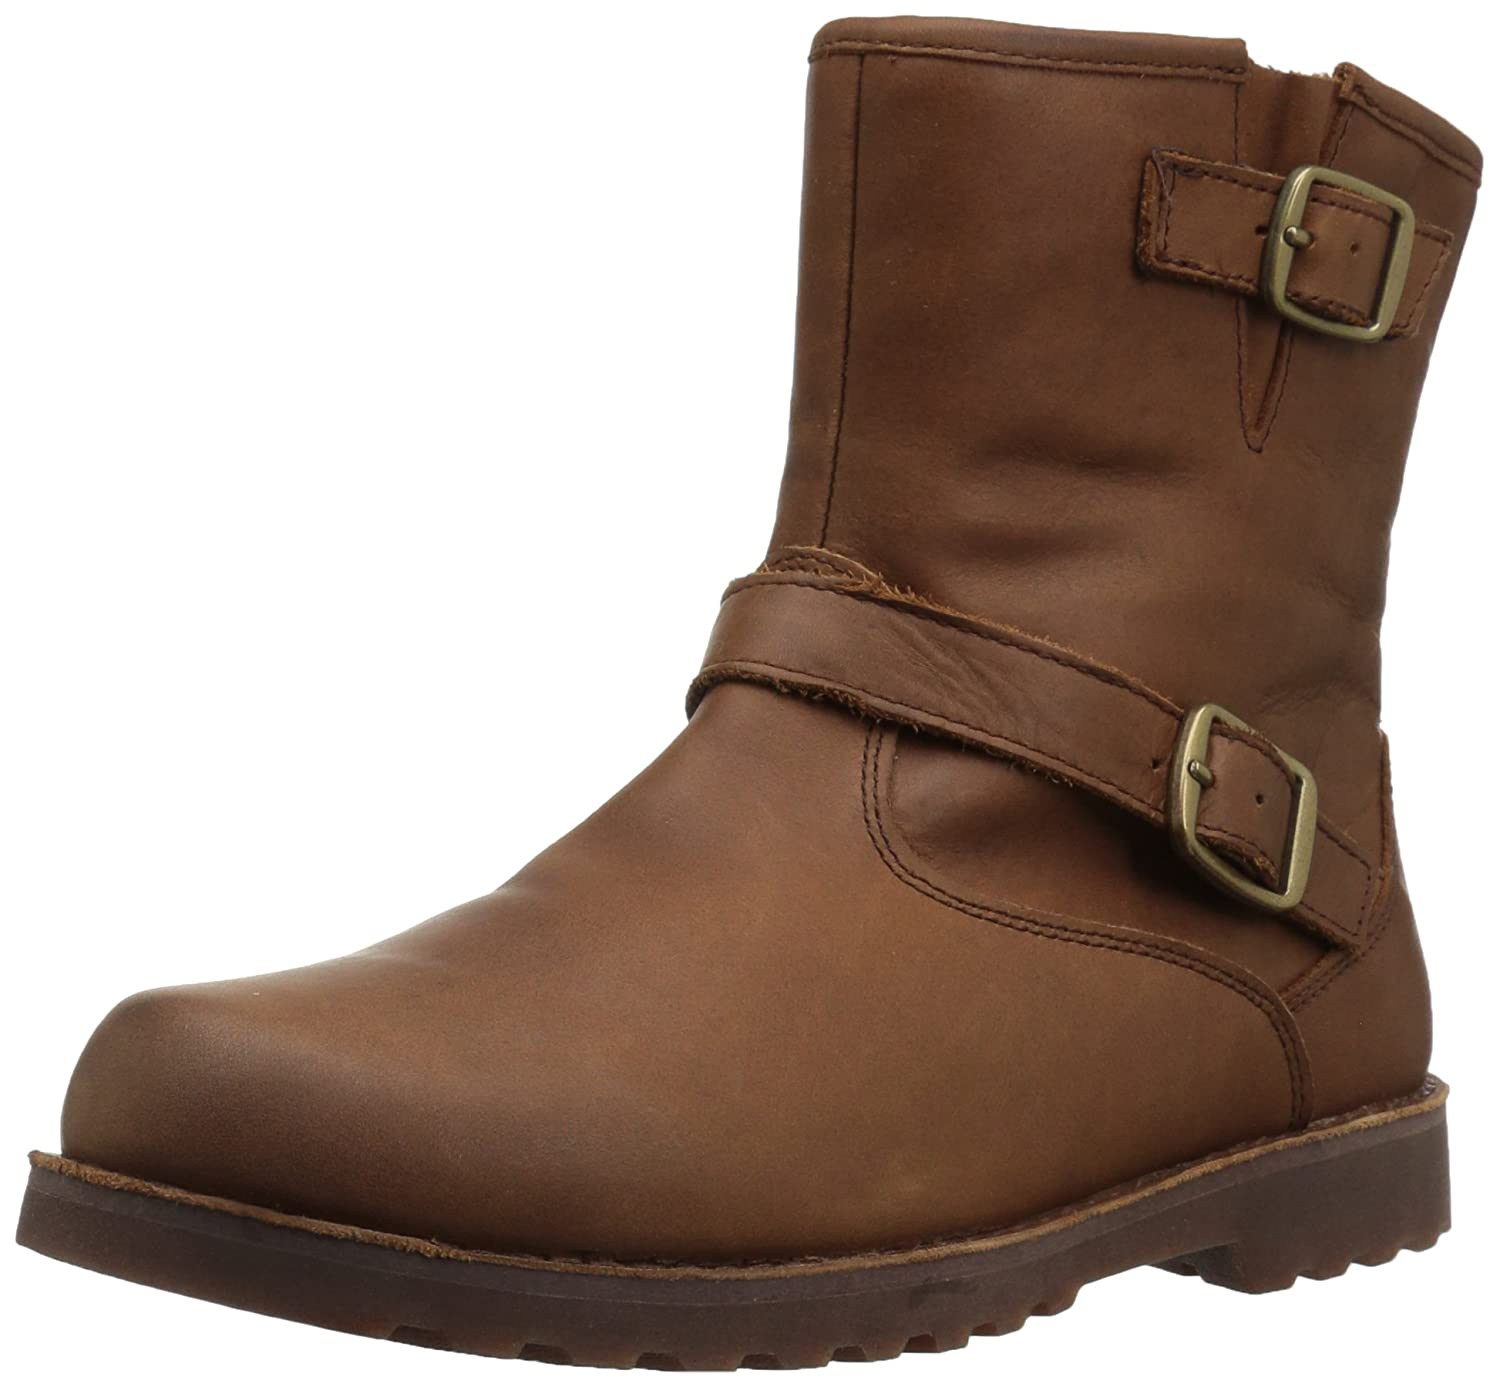 958486a6bf0 UGG K harwell Boot, Stout, 5 M US Big Kid: Amazon.co.uk: Shoes & Bags